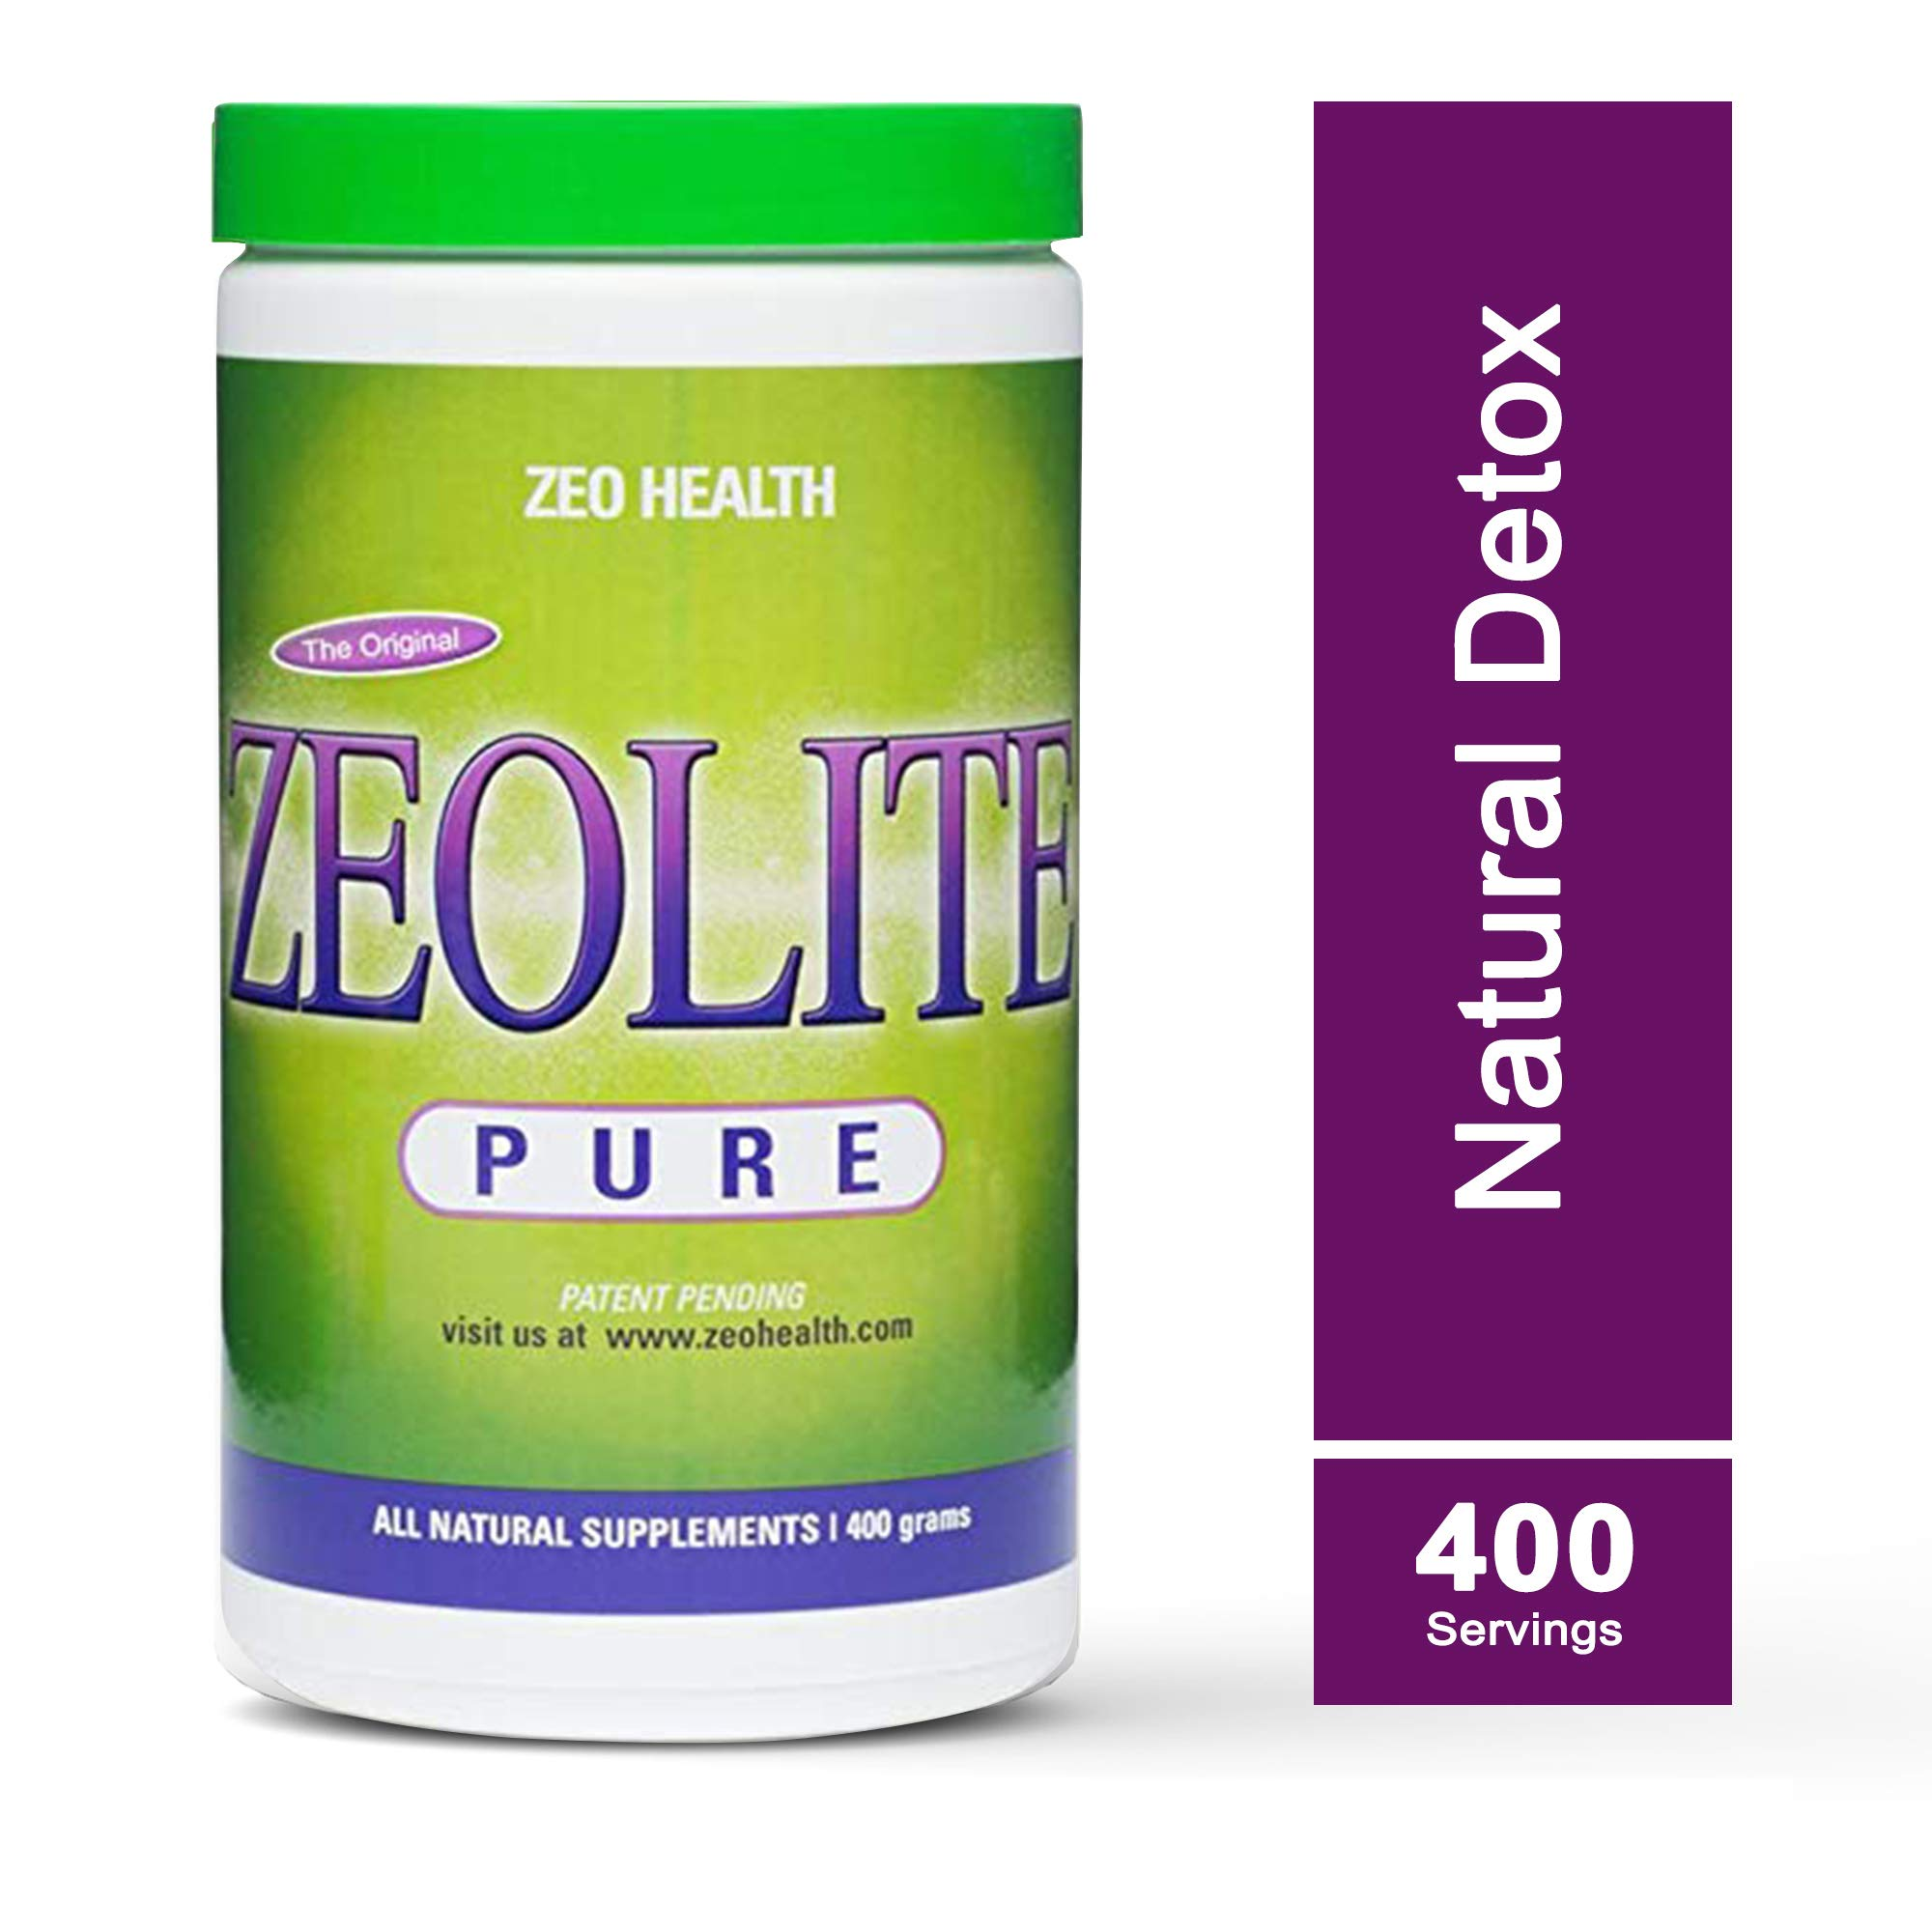 ZEOLITE PURE | Full Body Detox Cleanse | Safe, Gentle, & Effective Energy Booster that Supports Gut Health, Mental Clarity, & Healthy Inflammation Response| Original Zeolite Powder (400 Servings) by ZEOLITE PURE (Image #1)